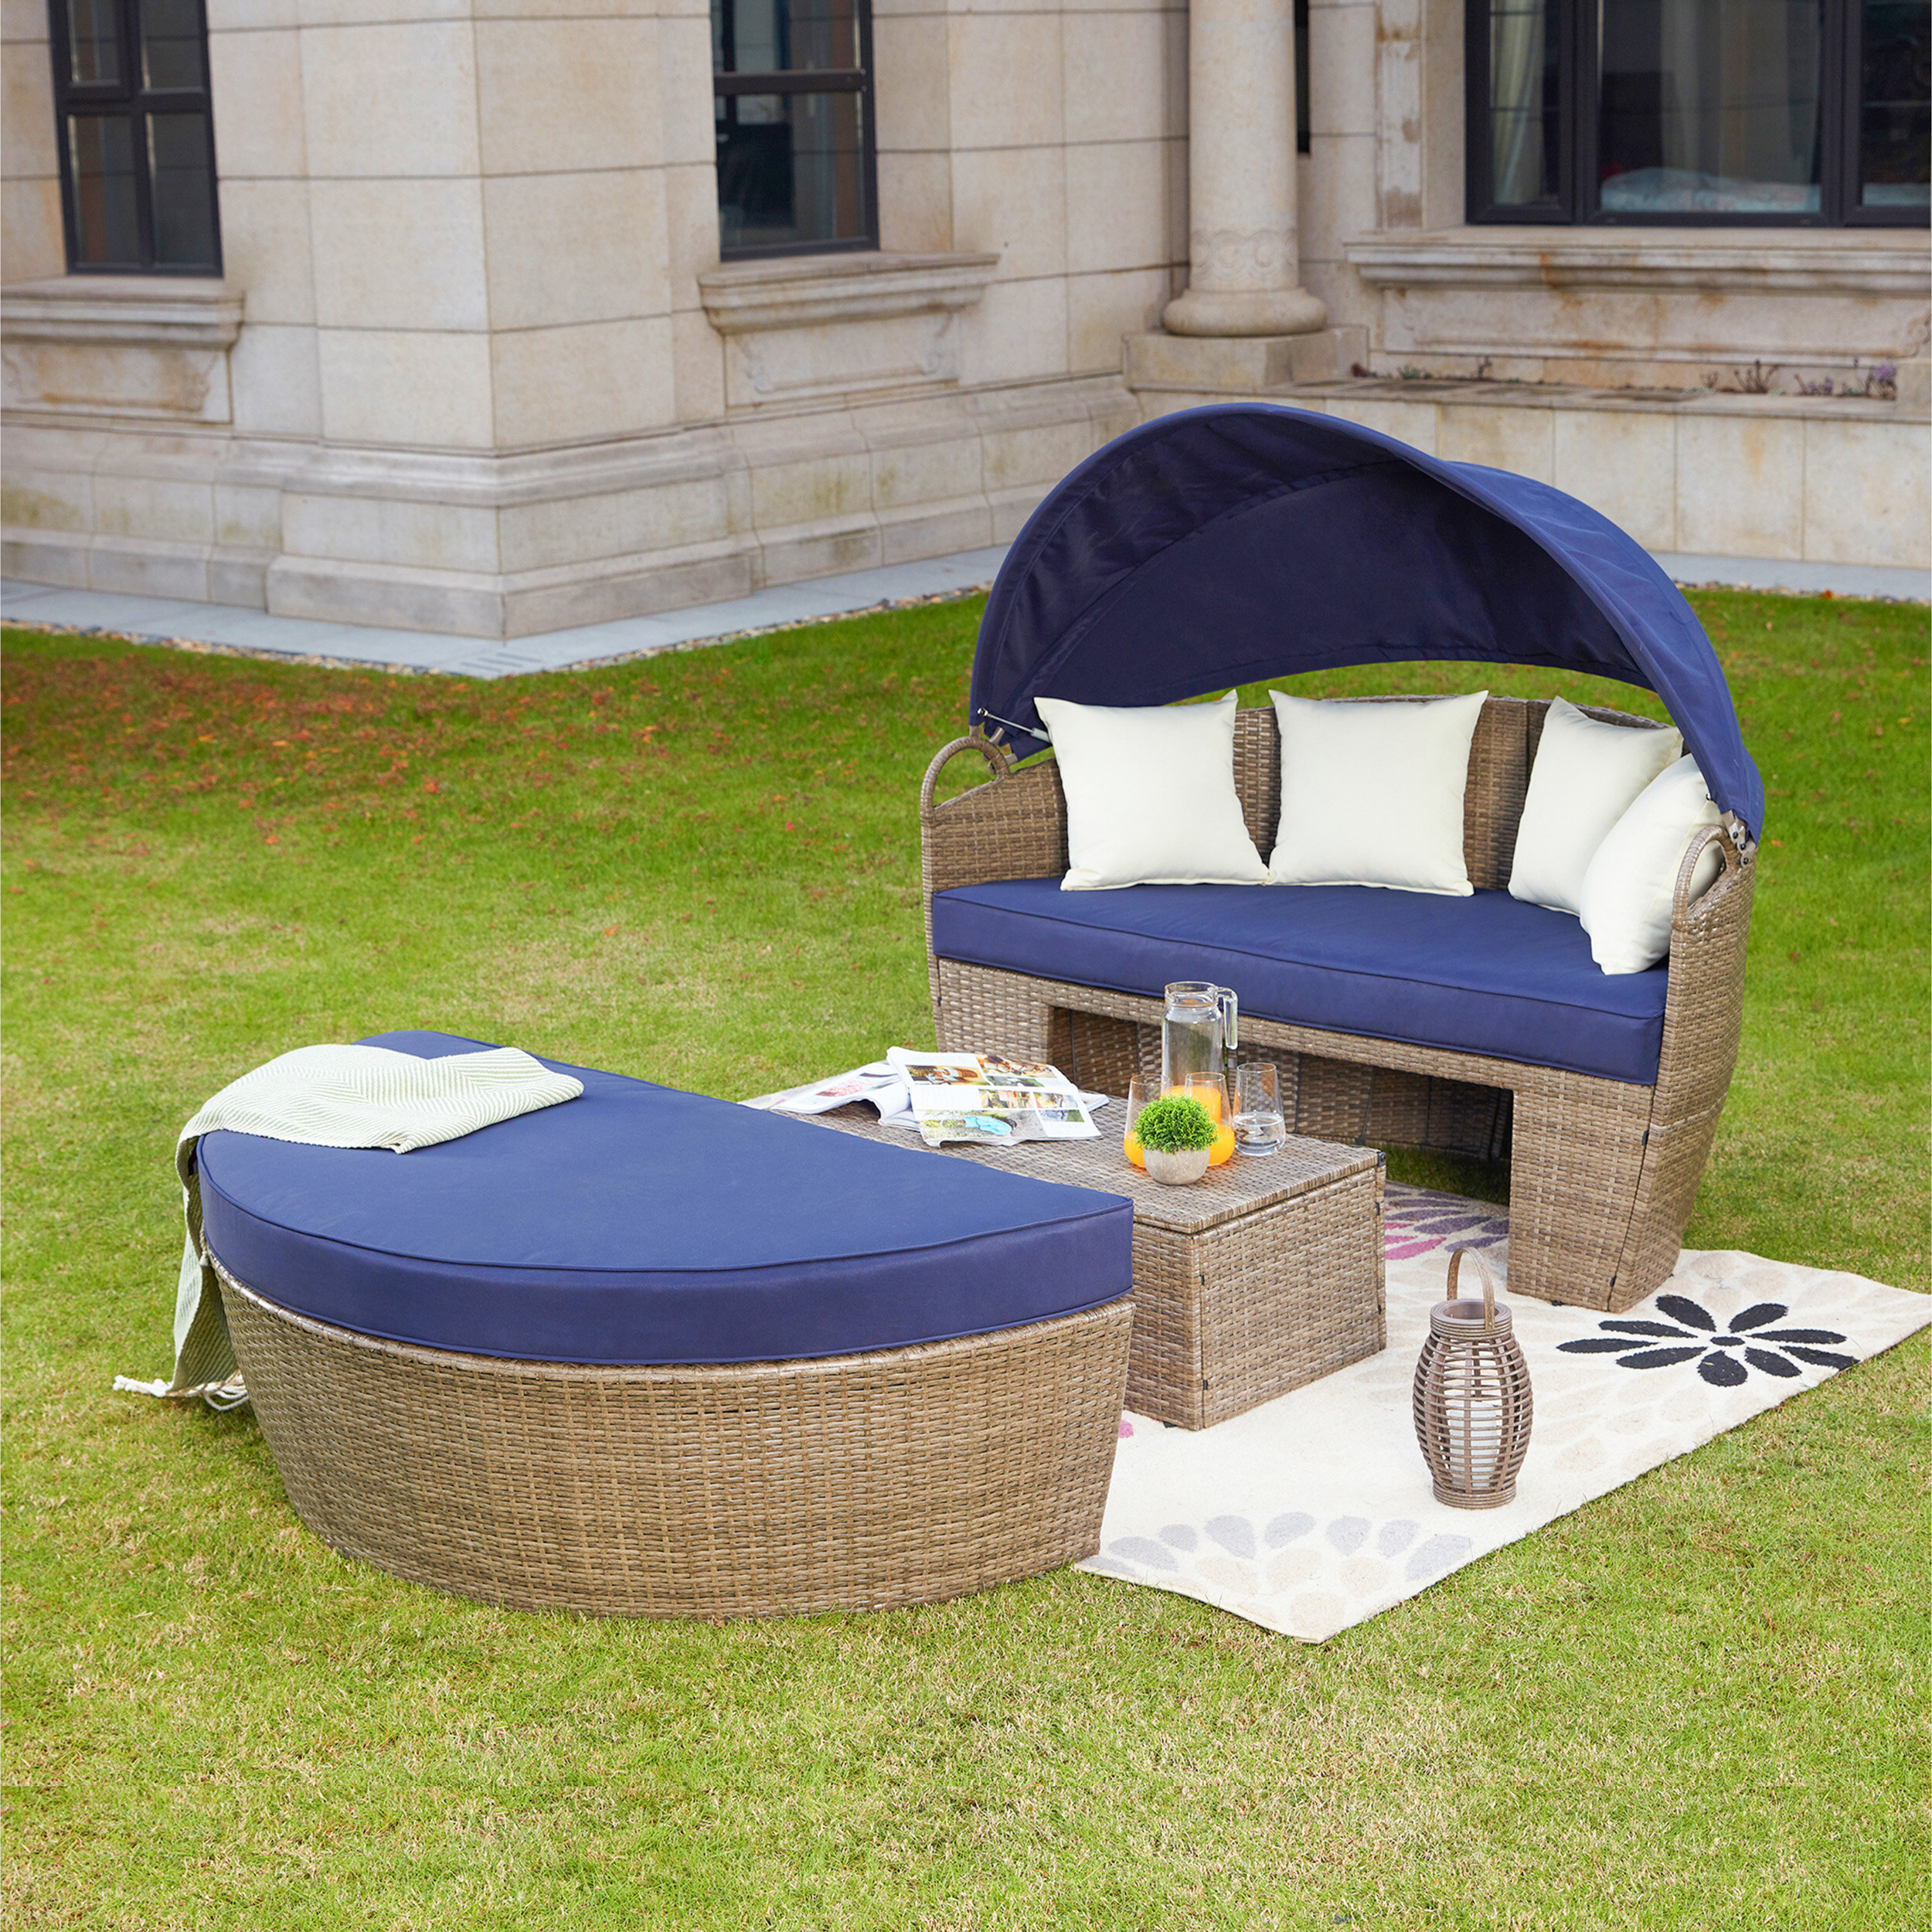 Tiana Patio Daybeds With Cushions With Regard To Well Known Fansler Patio Daybed With Cushions (View 4 of 20)